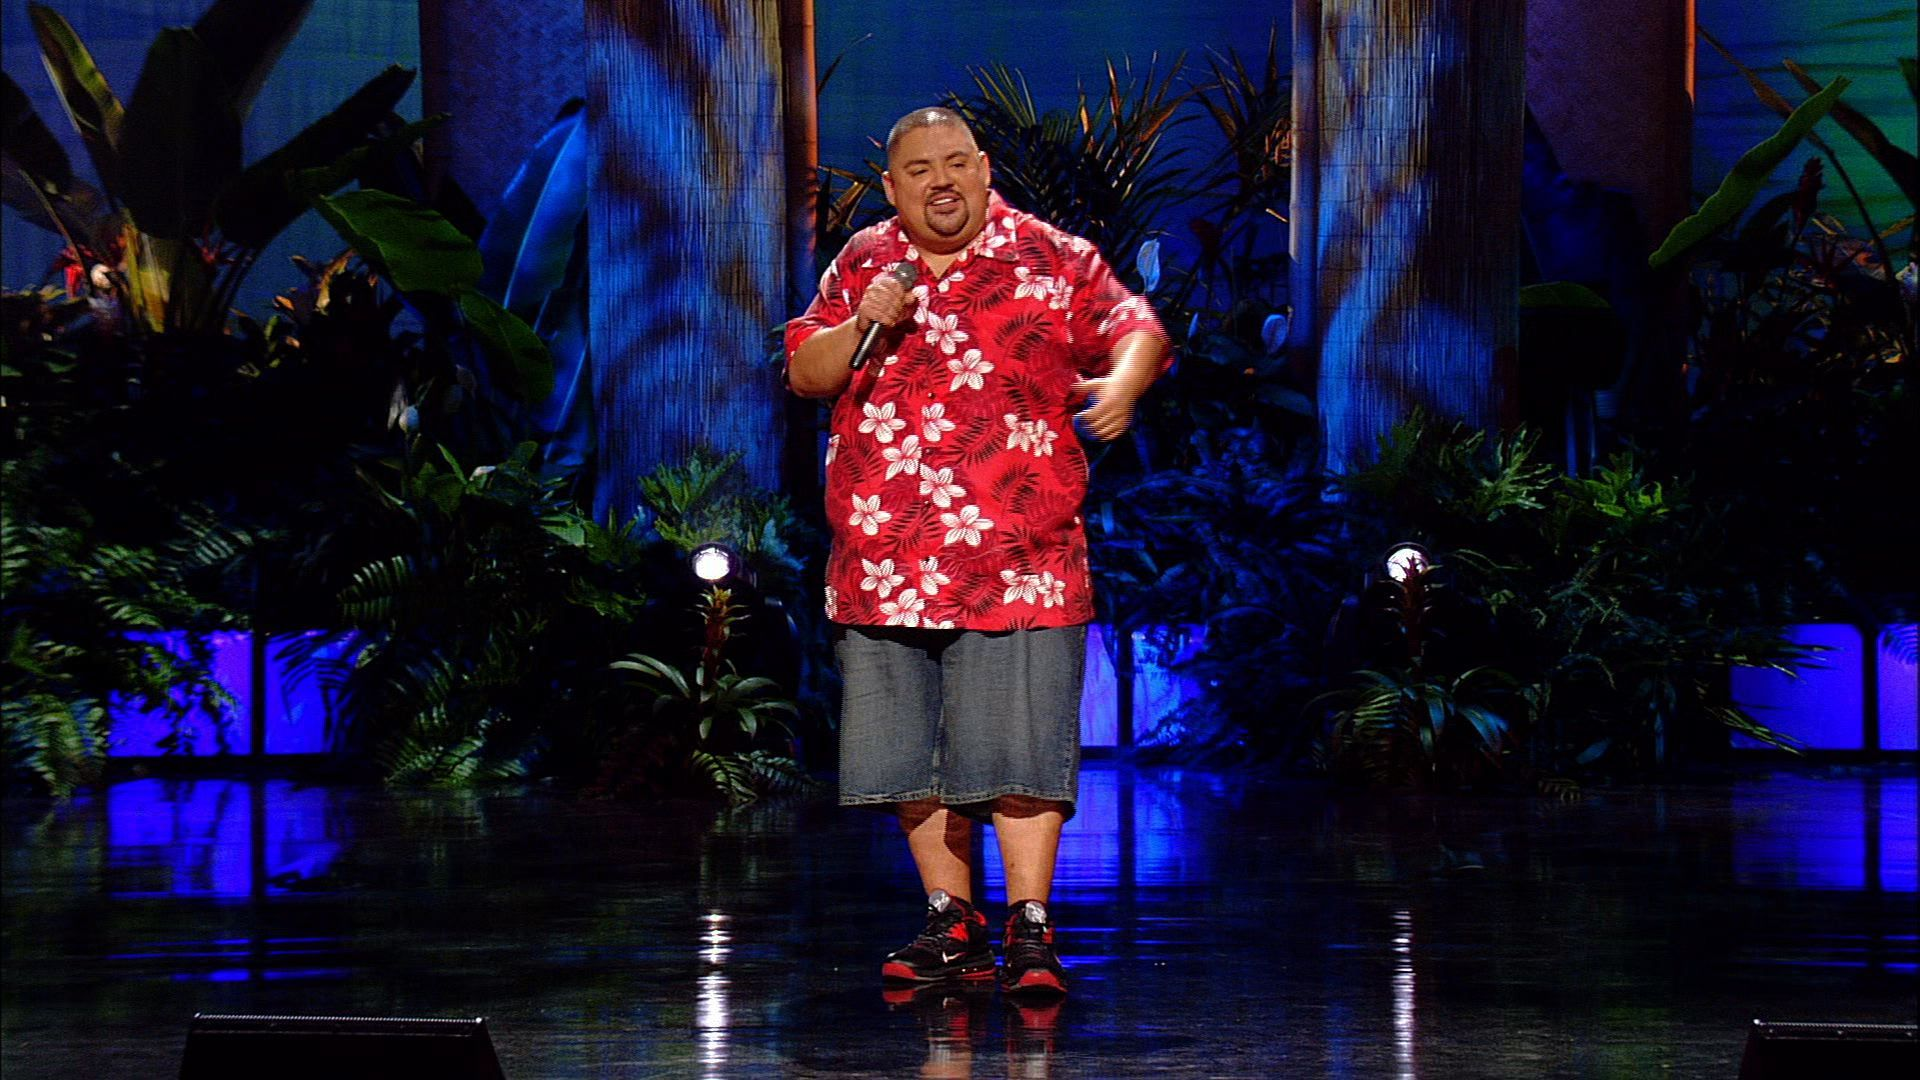 Gabriel Iglesias Family - Viewing Gallery